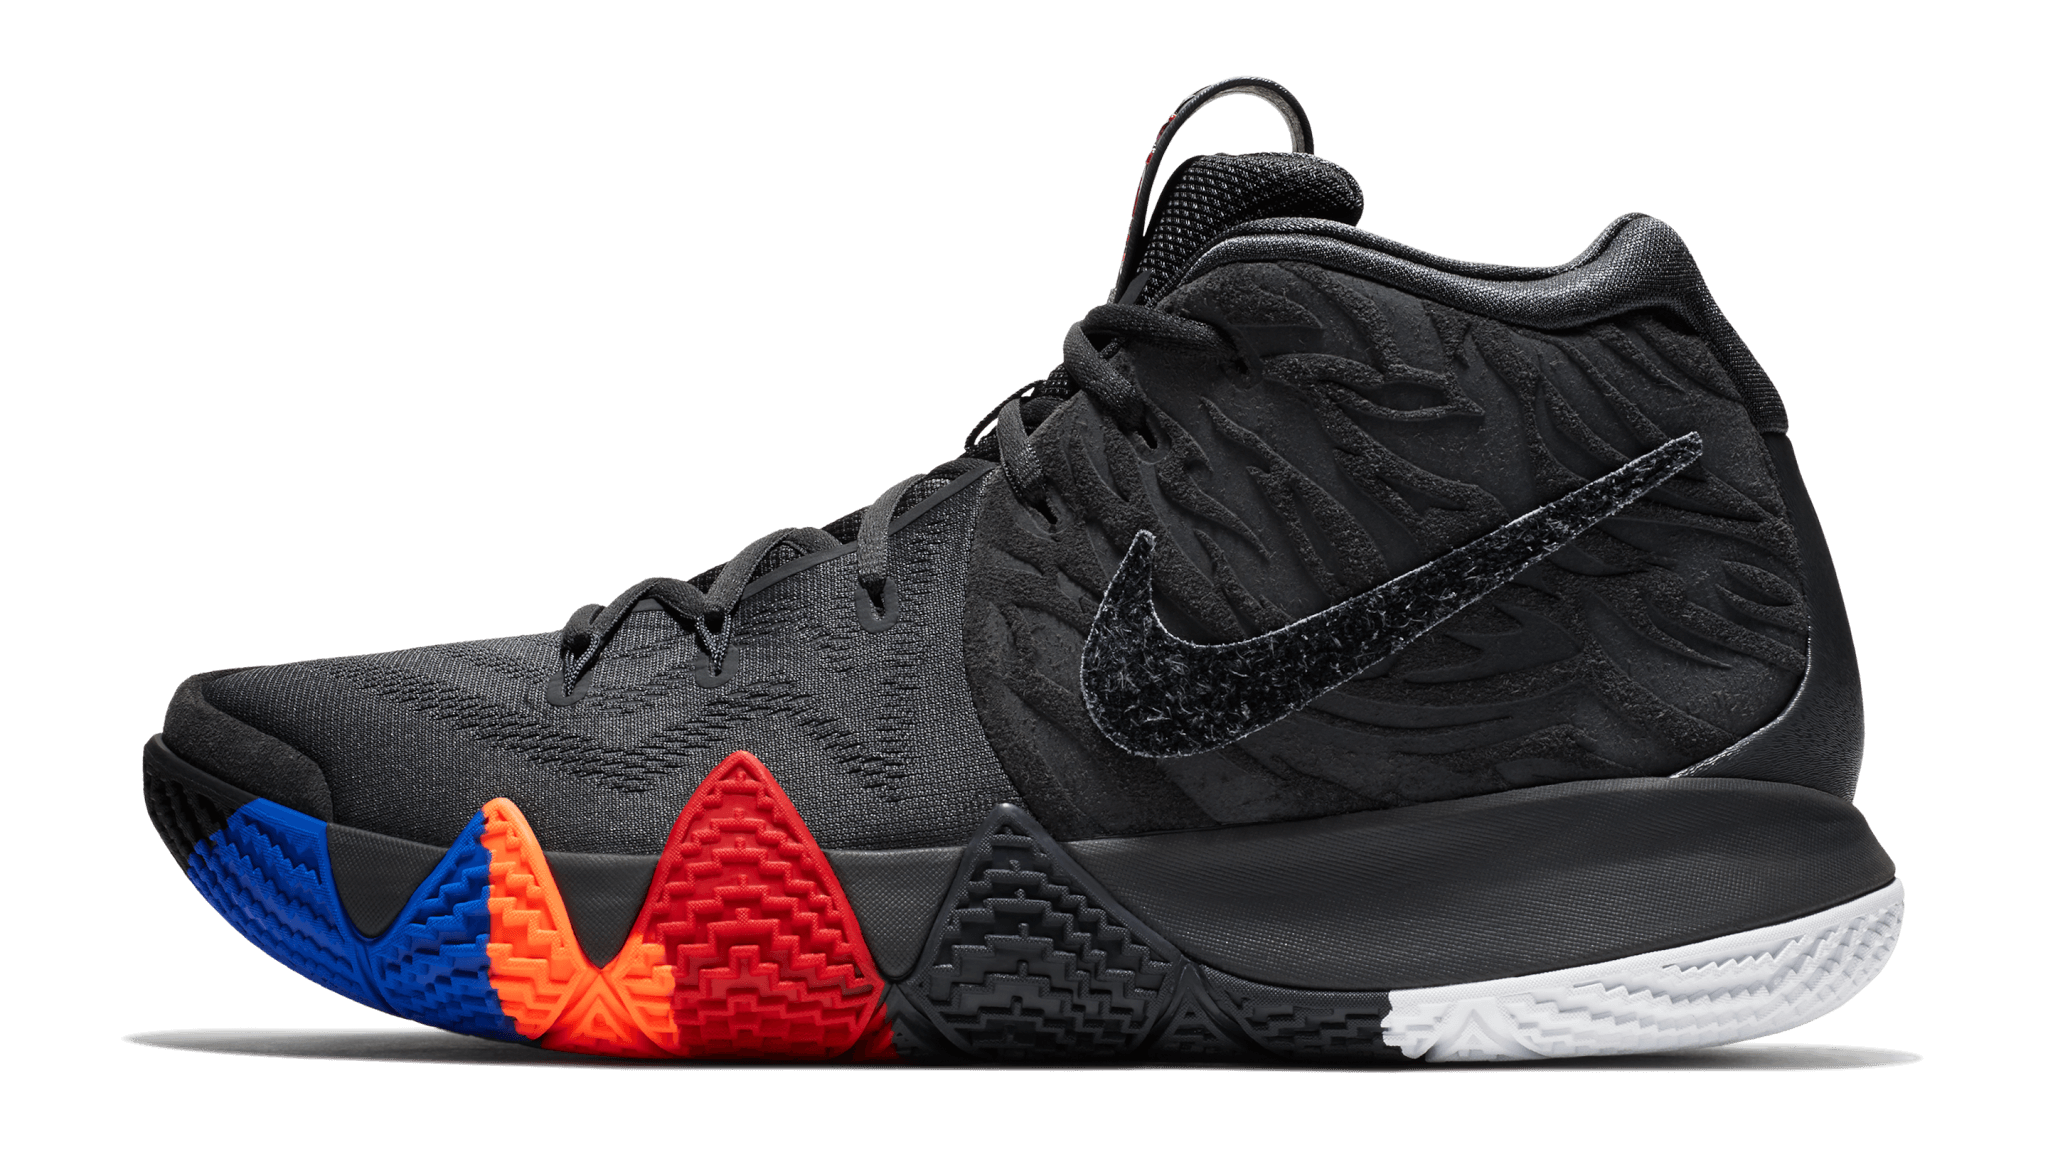 405f5b4c177e Nike Kyrie 4 Performance Review